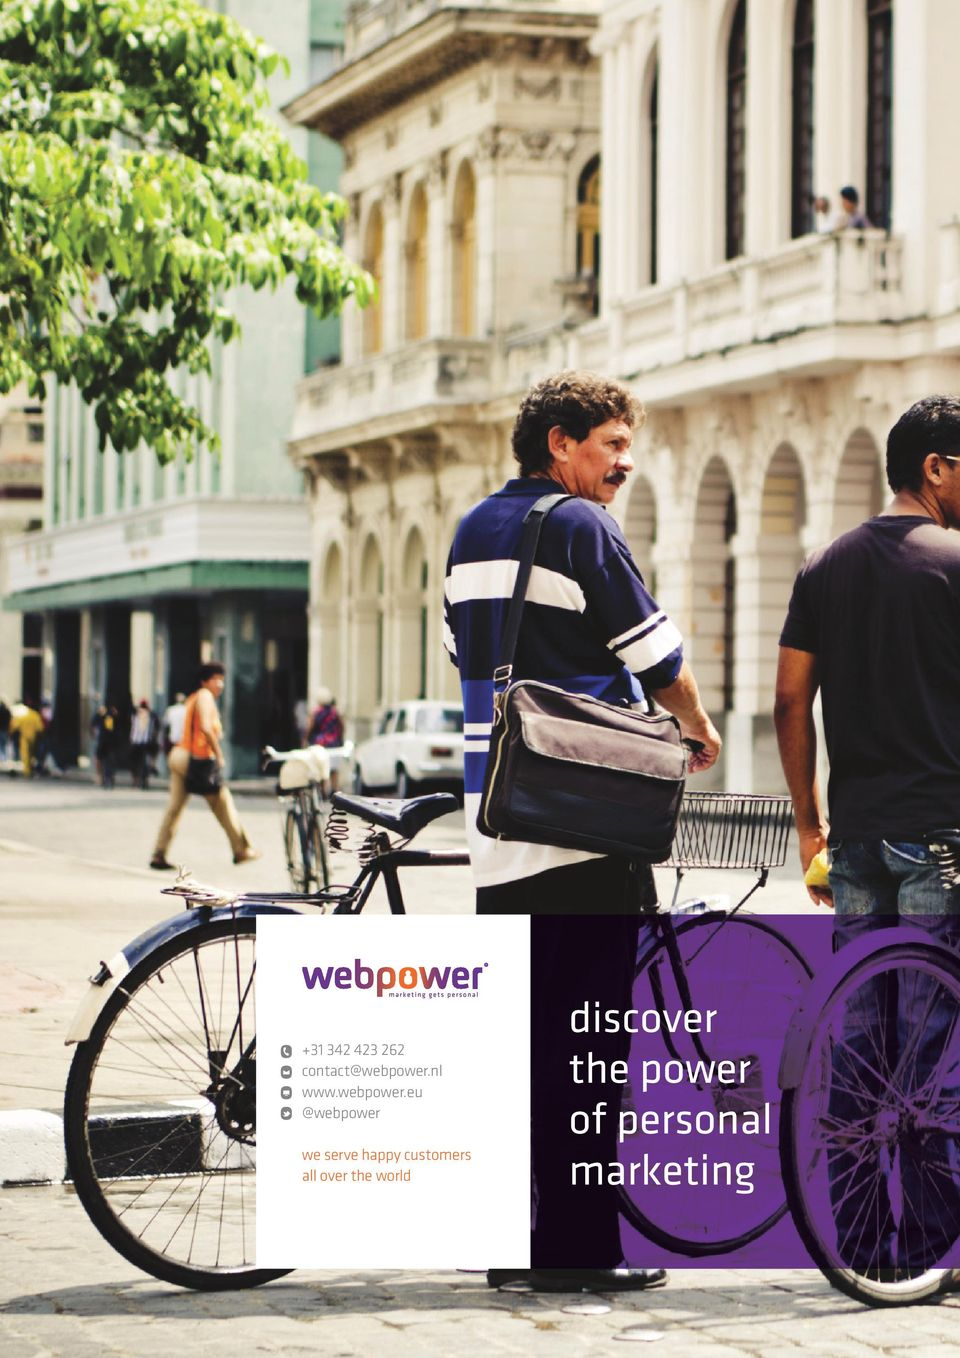 eu @webpower we serve happy